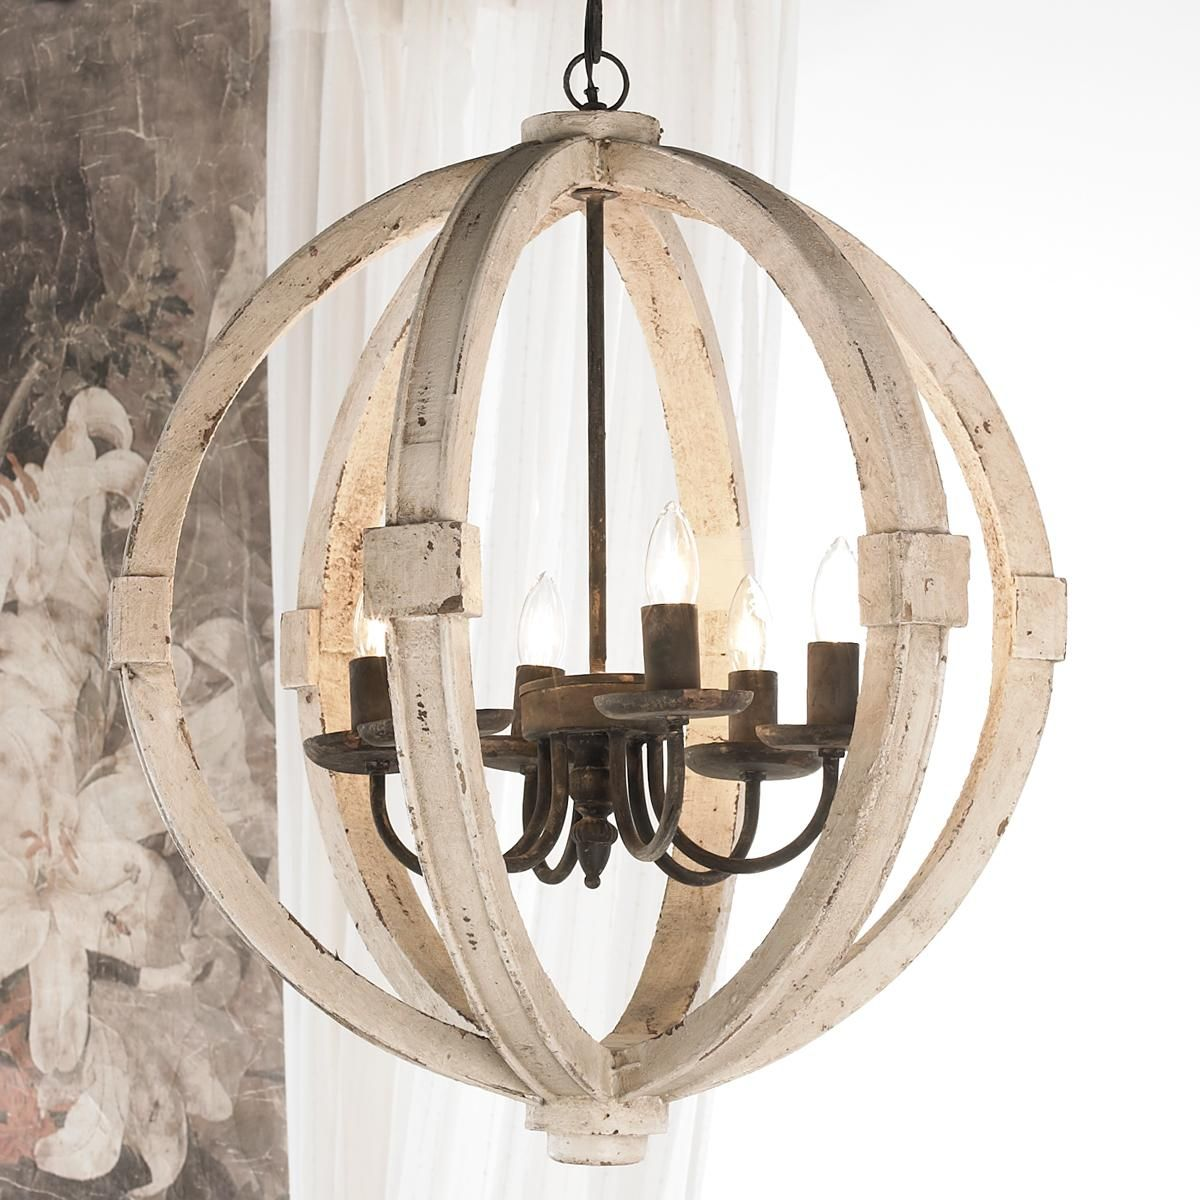 Find this pin and more on lighting white washed wood sphere